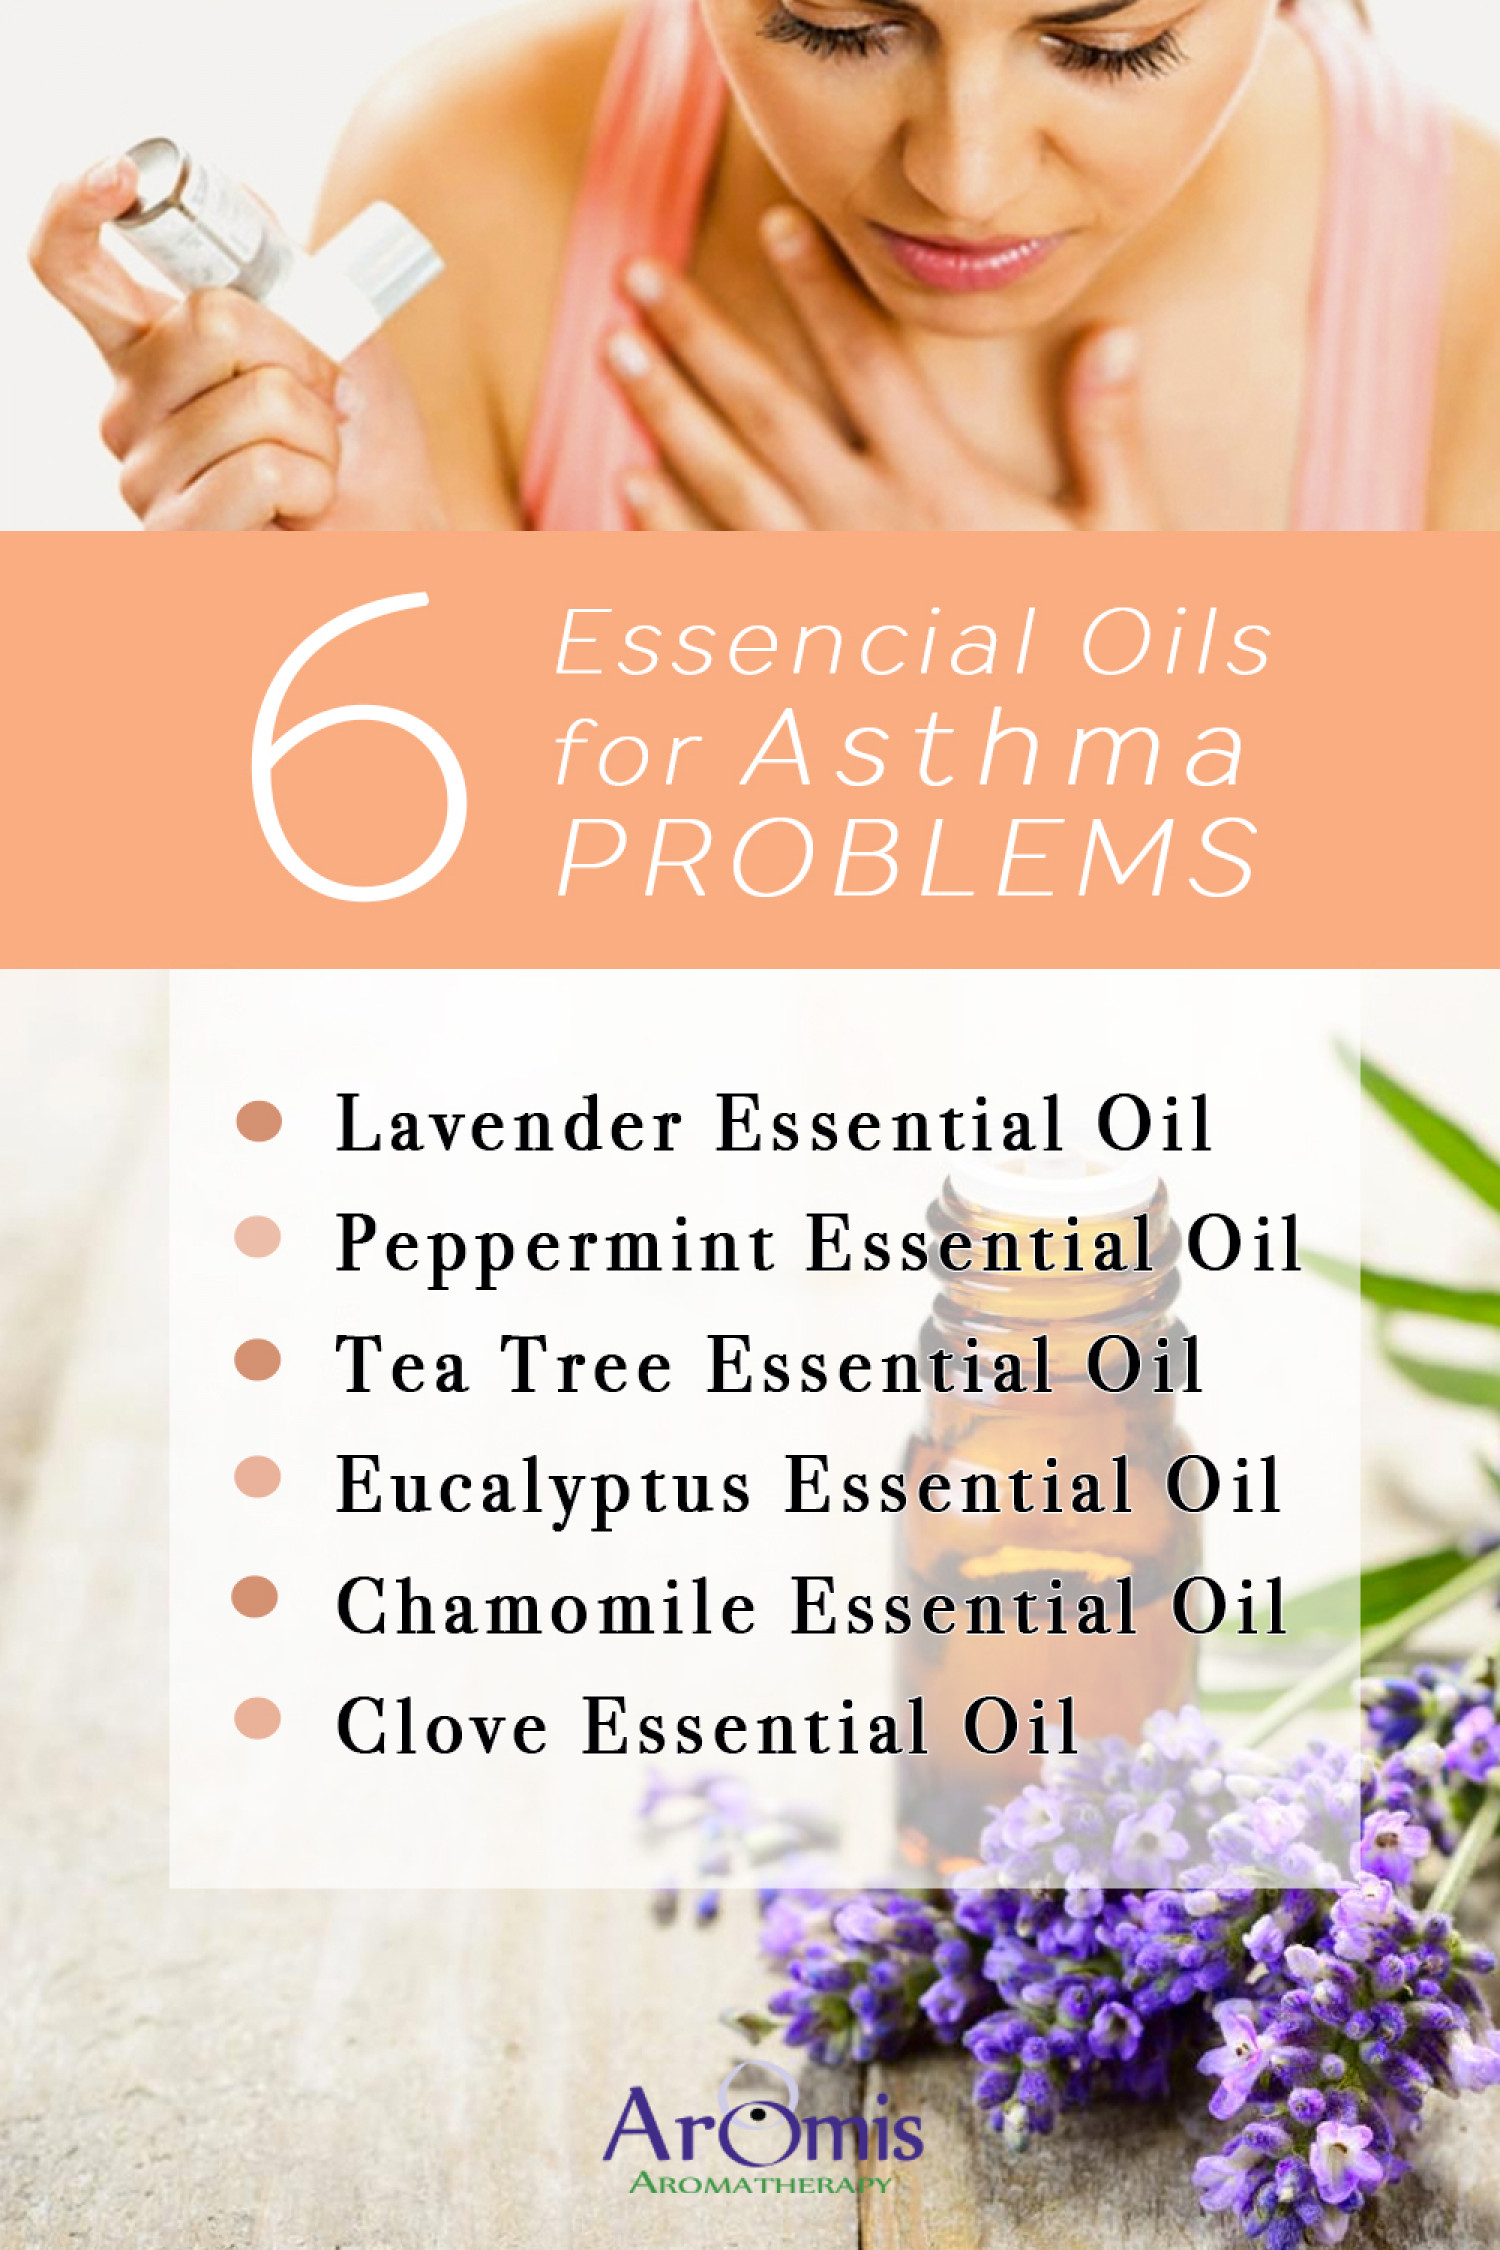 6 Essential Oils for Asthma Problems Infographic